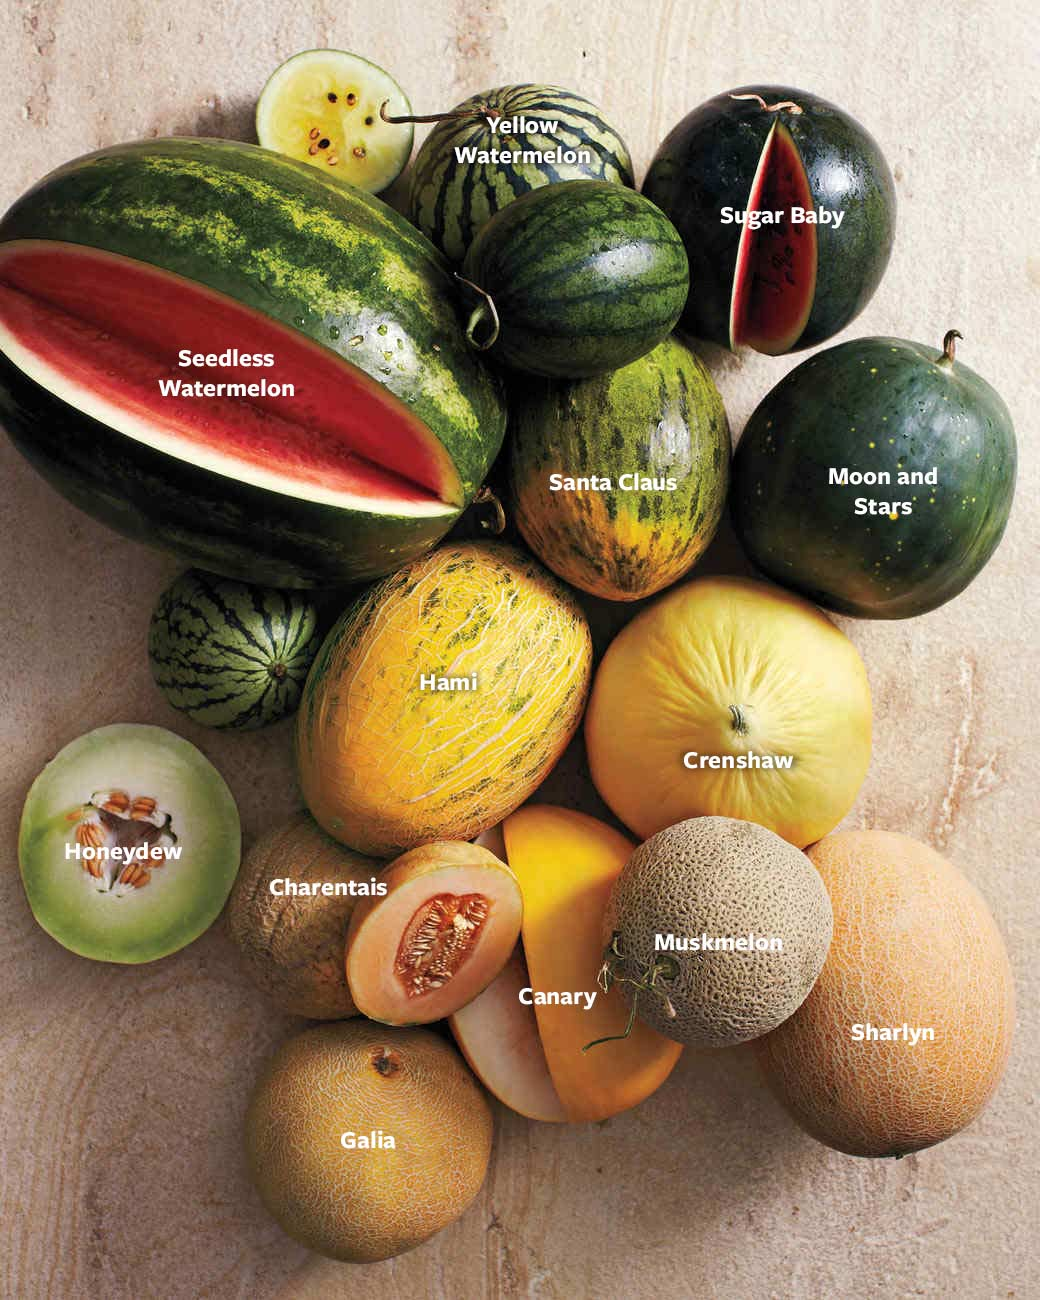 Summer Melon Guide Martha Stewart The nutrients that these melons contain may help preserve eye health, prevent asthma, and more. summer melon guide martha stewart